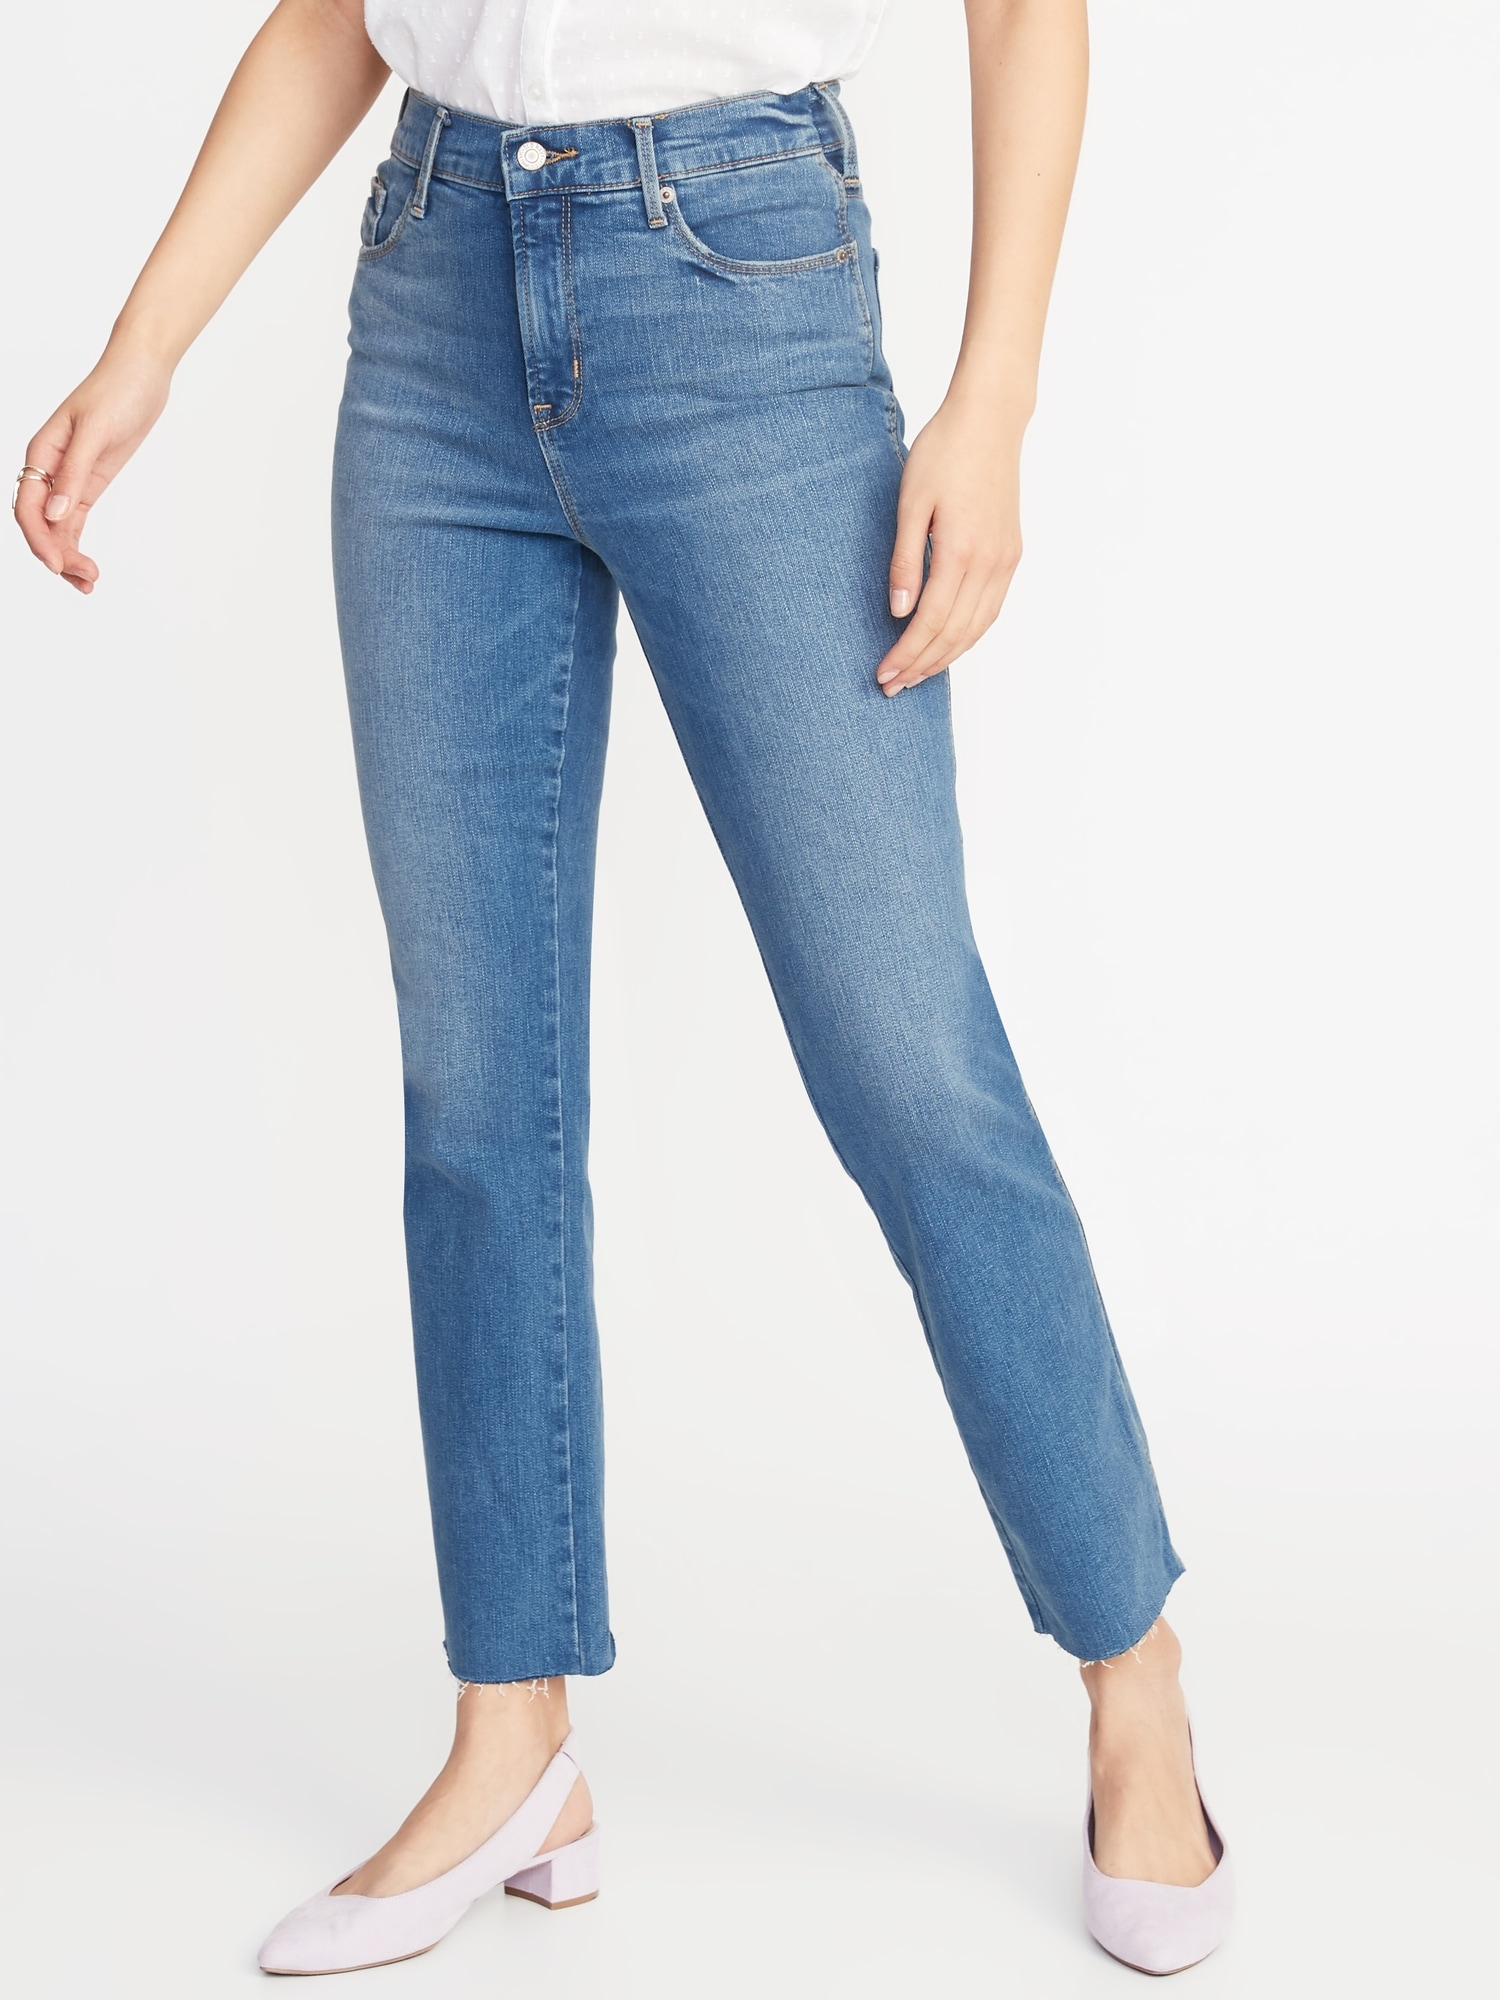 6c695462353 High-Rise Secret-Slim Pockets Flare Ankle Jeans for Women